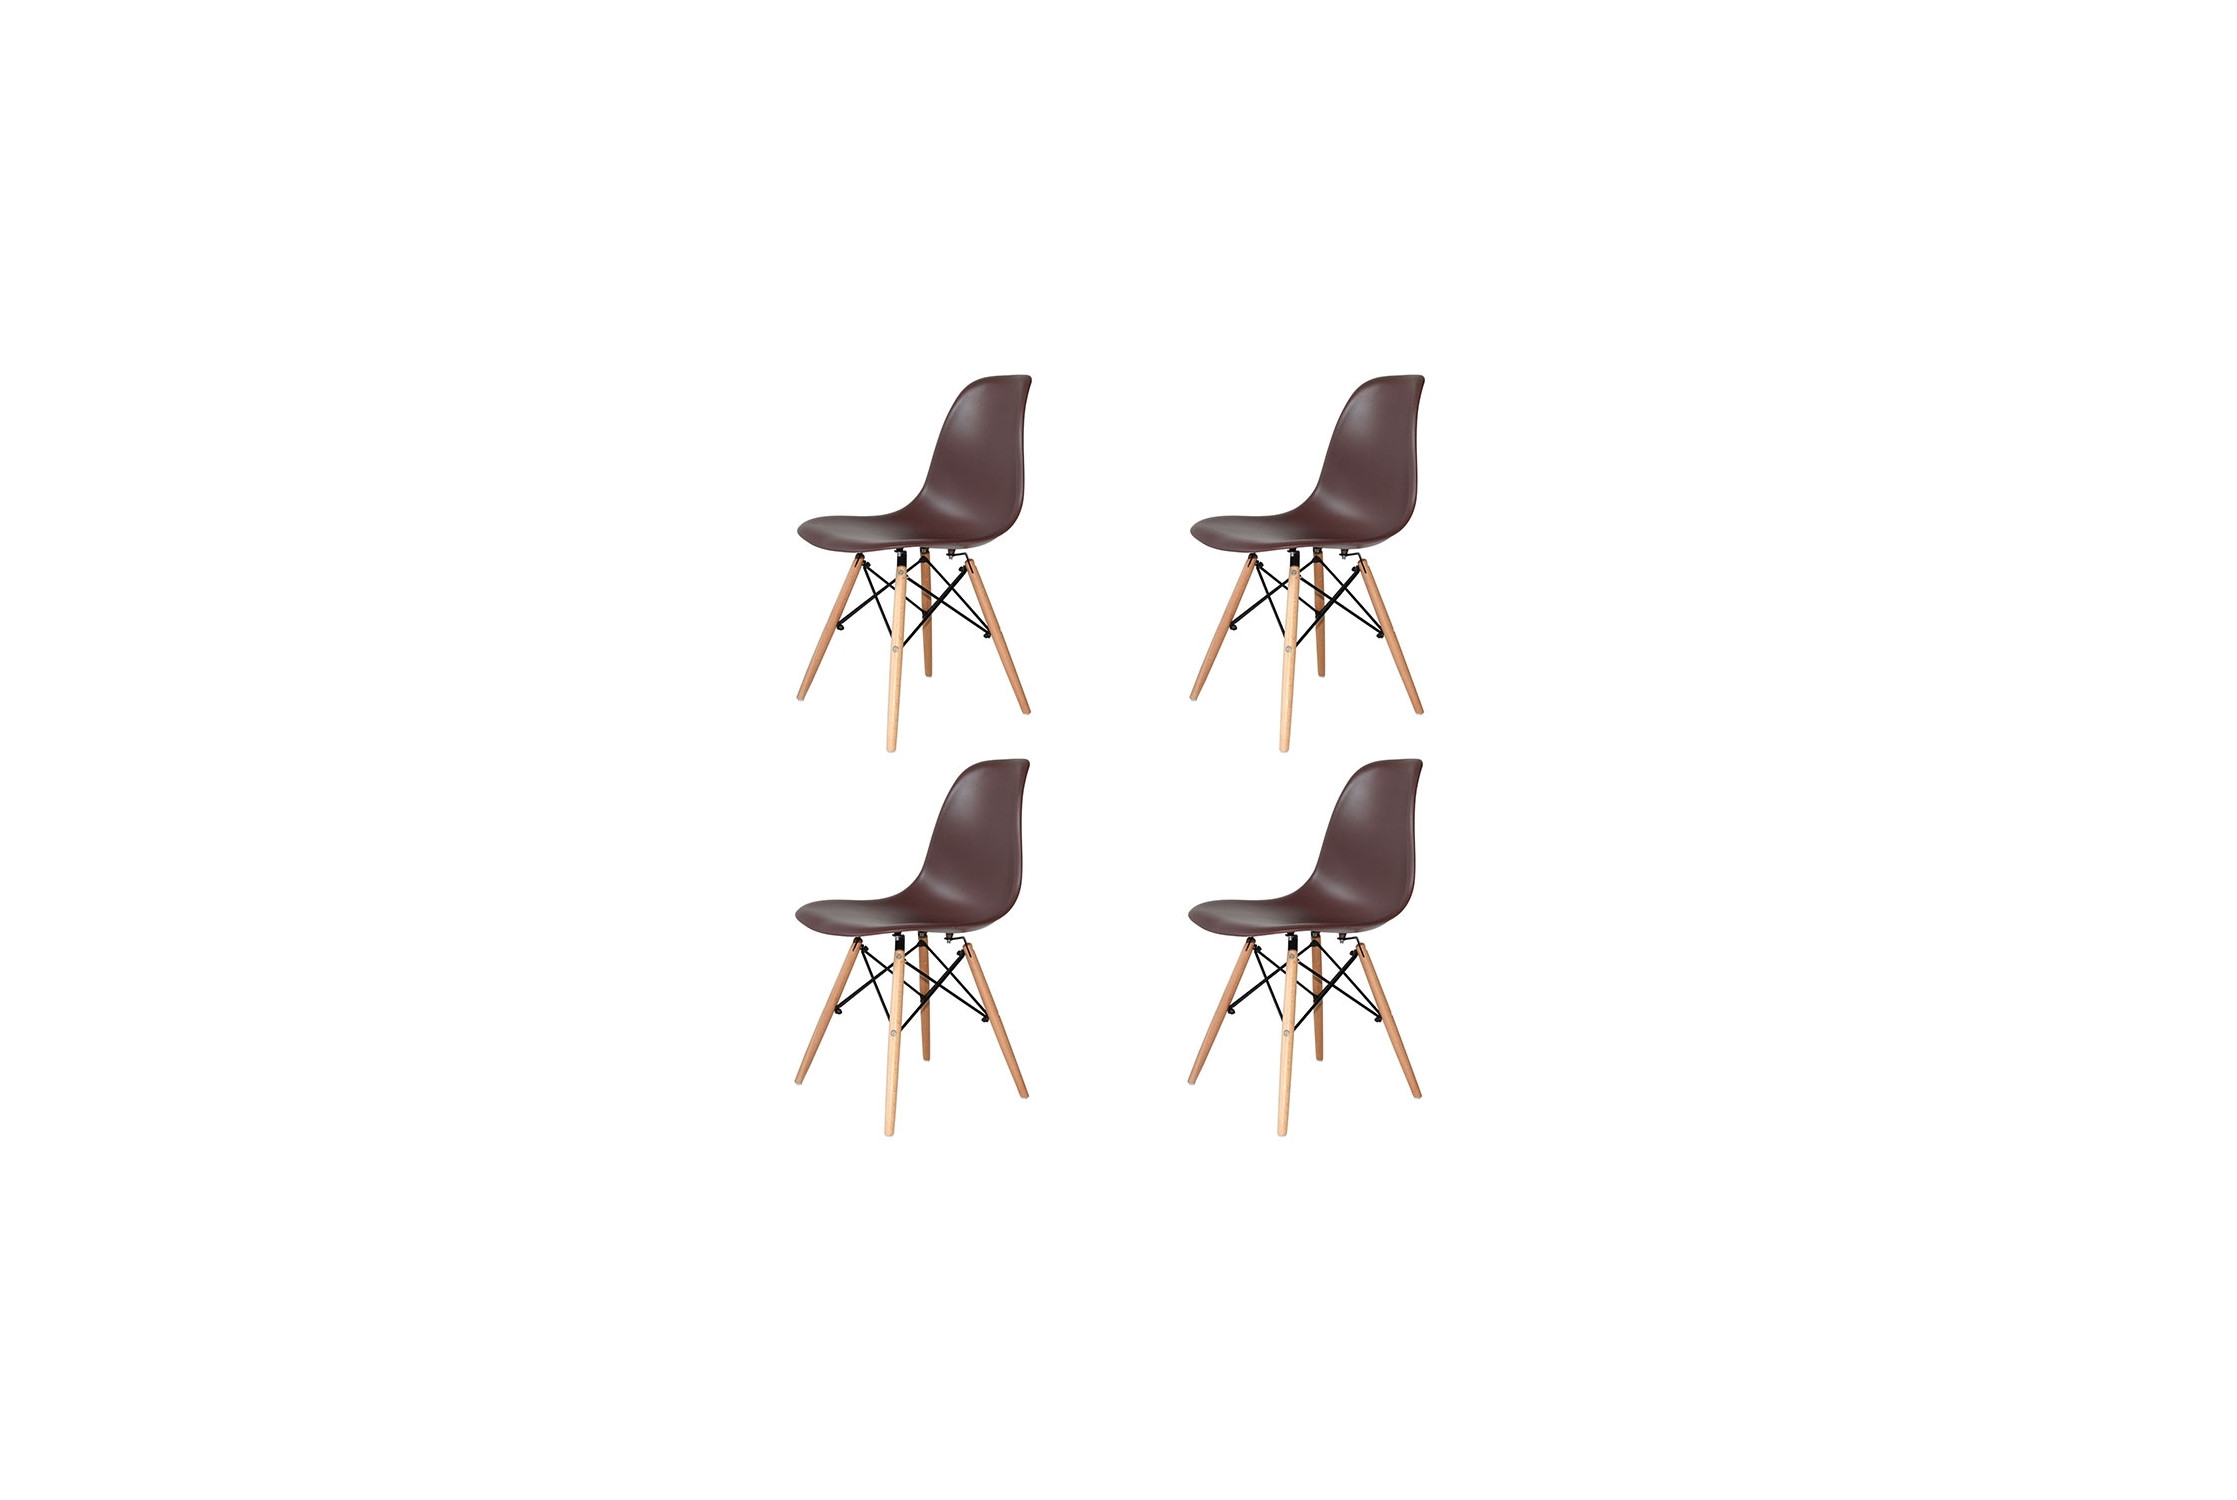 PACK 4 CHAISES TOWER WOOD MARRONS EXTRA QUALITY